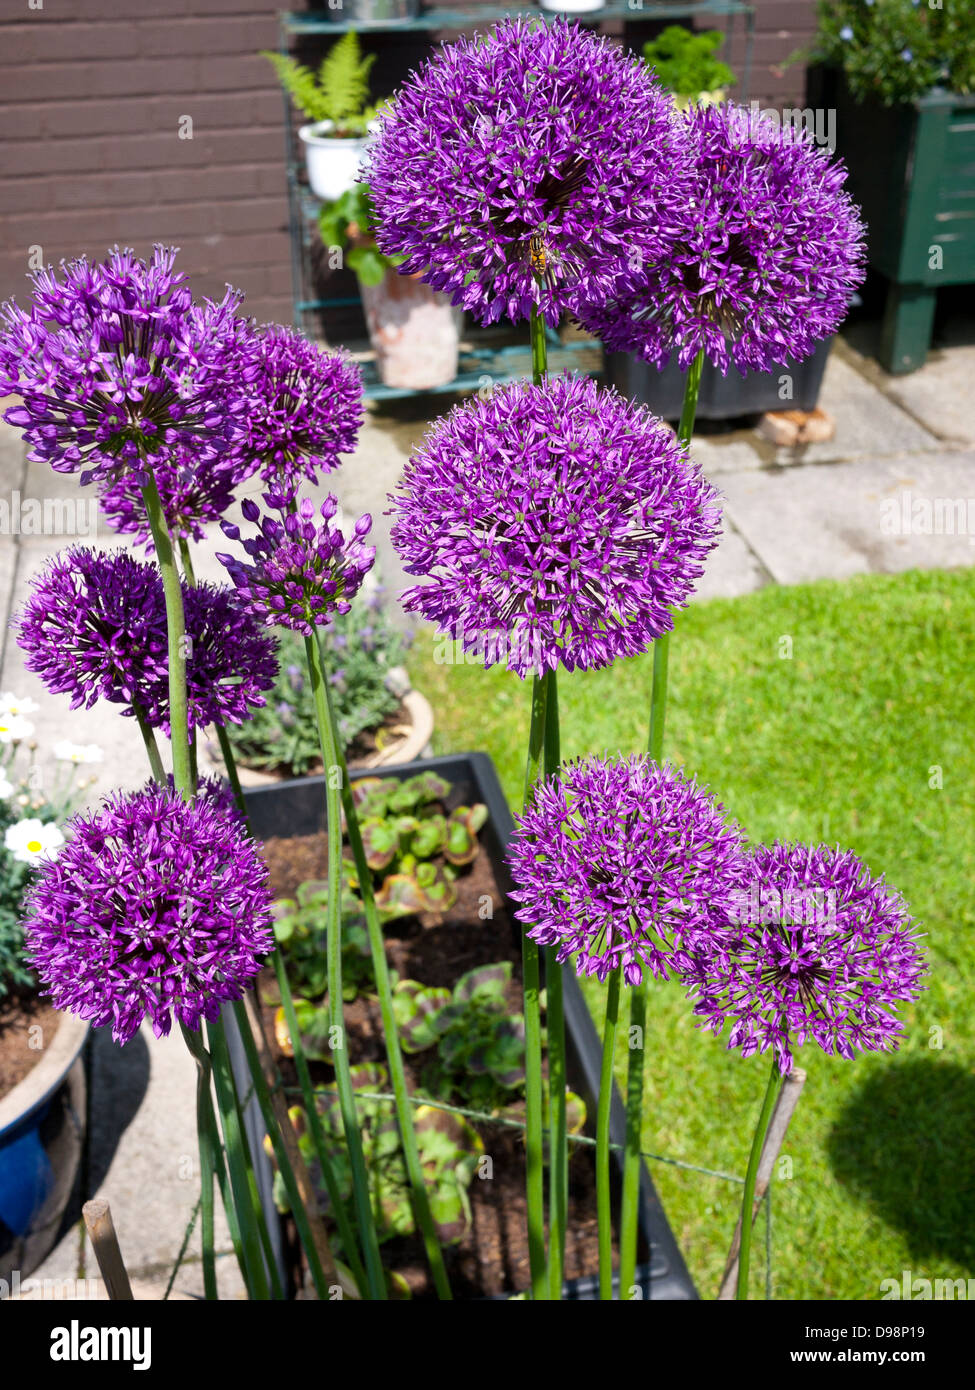 Allium Pflanzen Wann Allium Pflanze Stockfotos Allium Pflanze Bilder Alamy